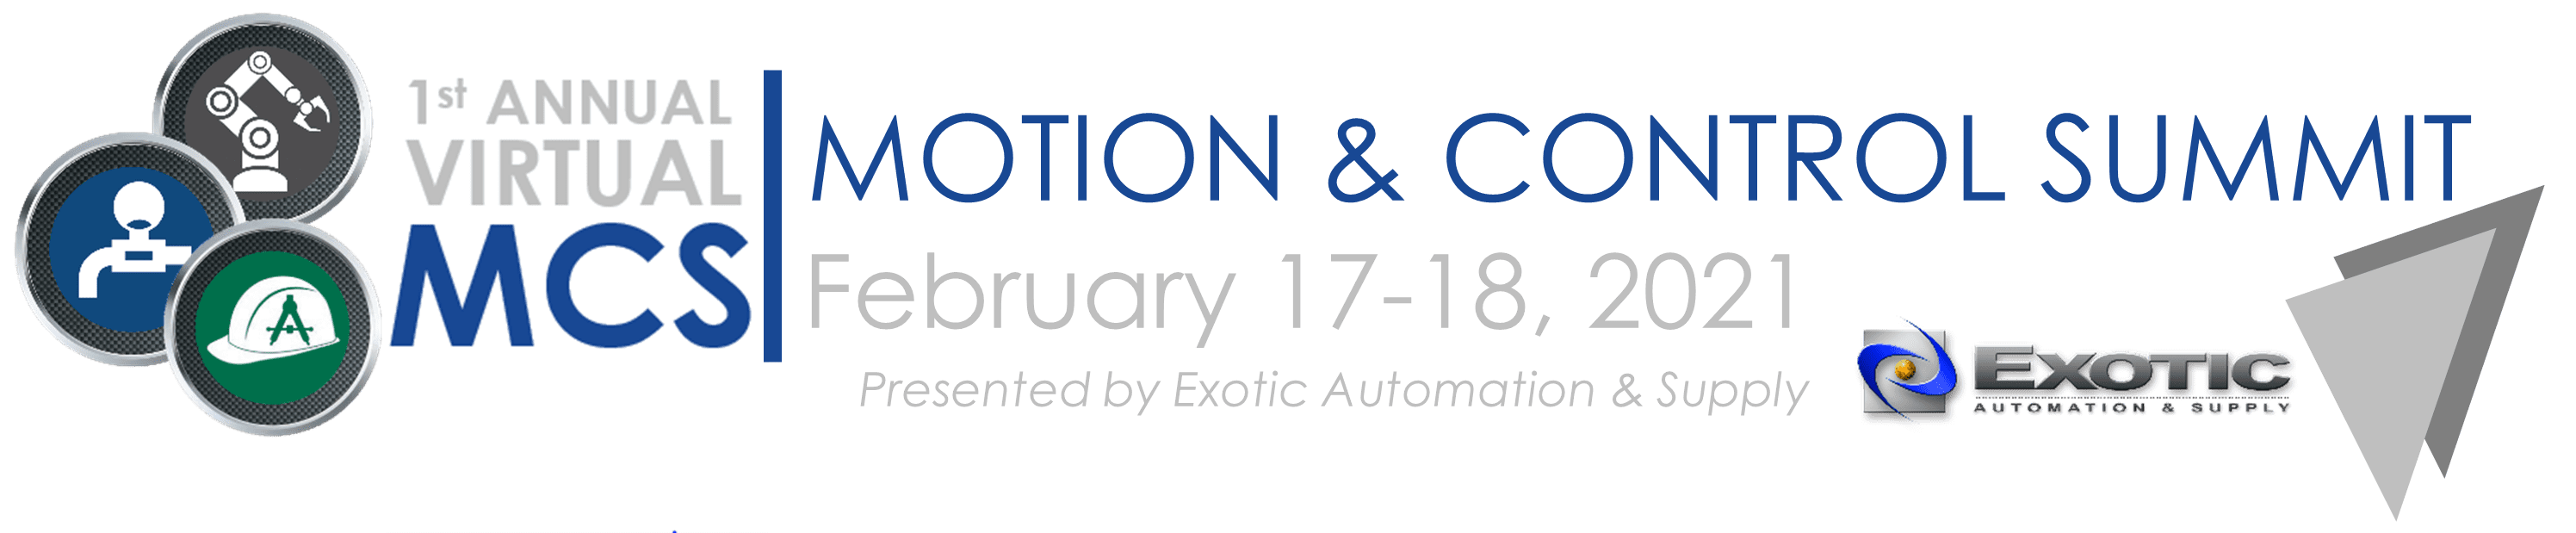 Exotic Automation & Supply 1st Annual Virtual Motion & Control Summit